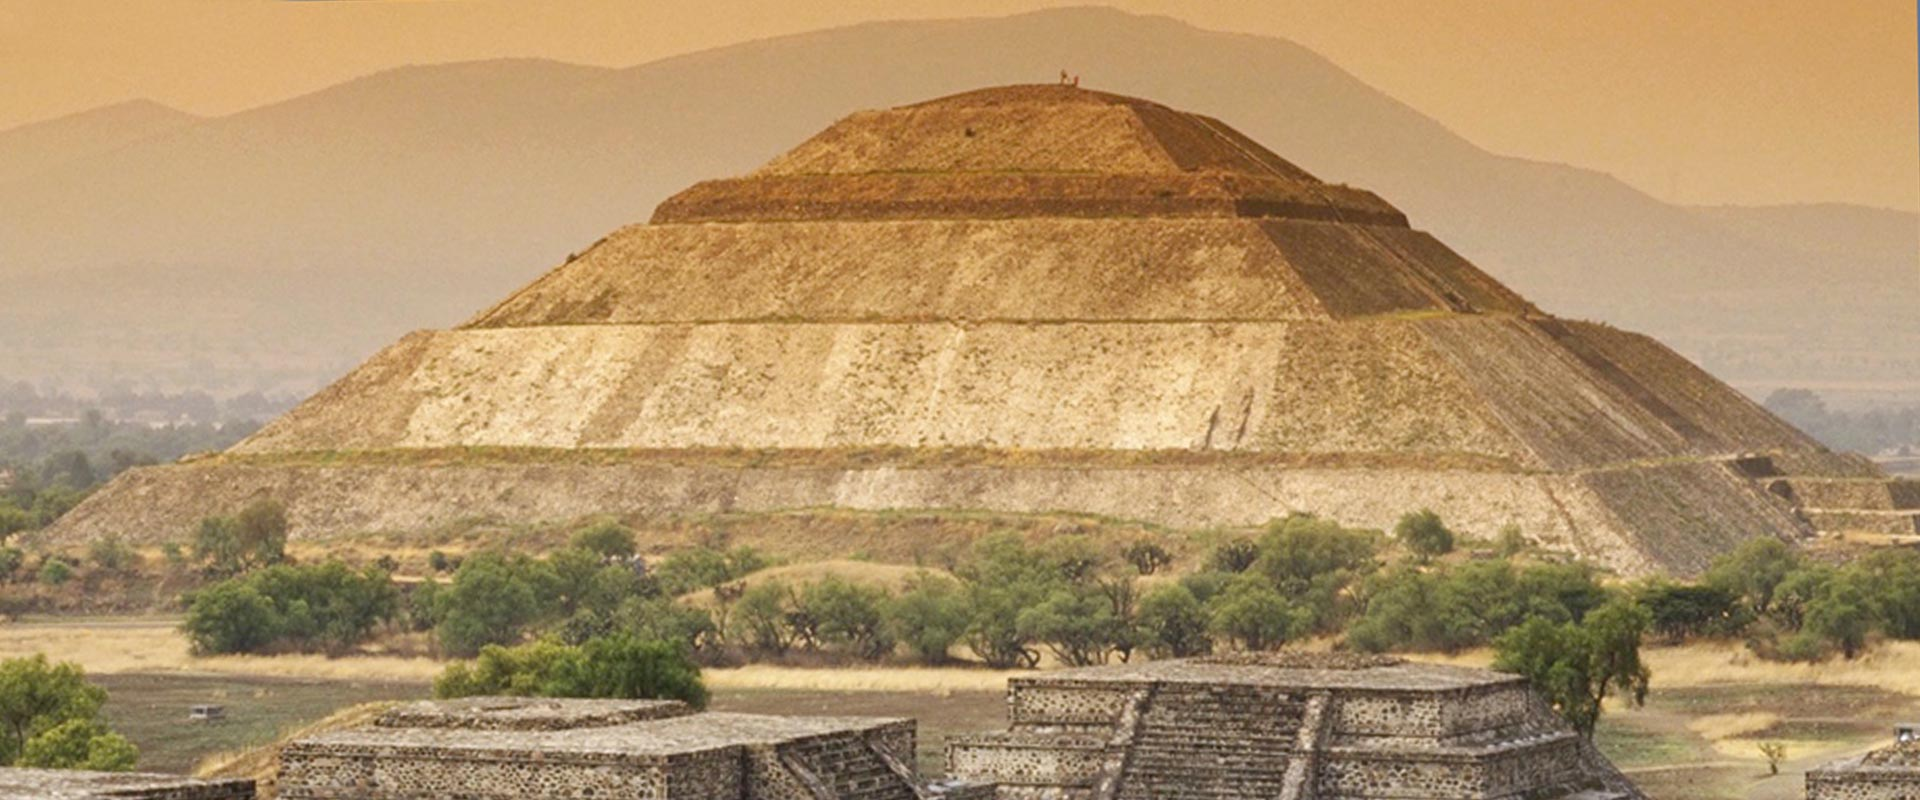 Teotihuacán, Place of the Gods